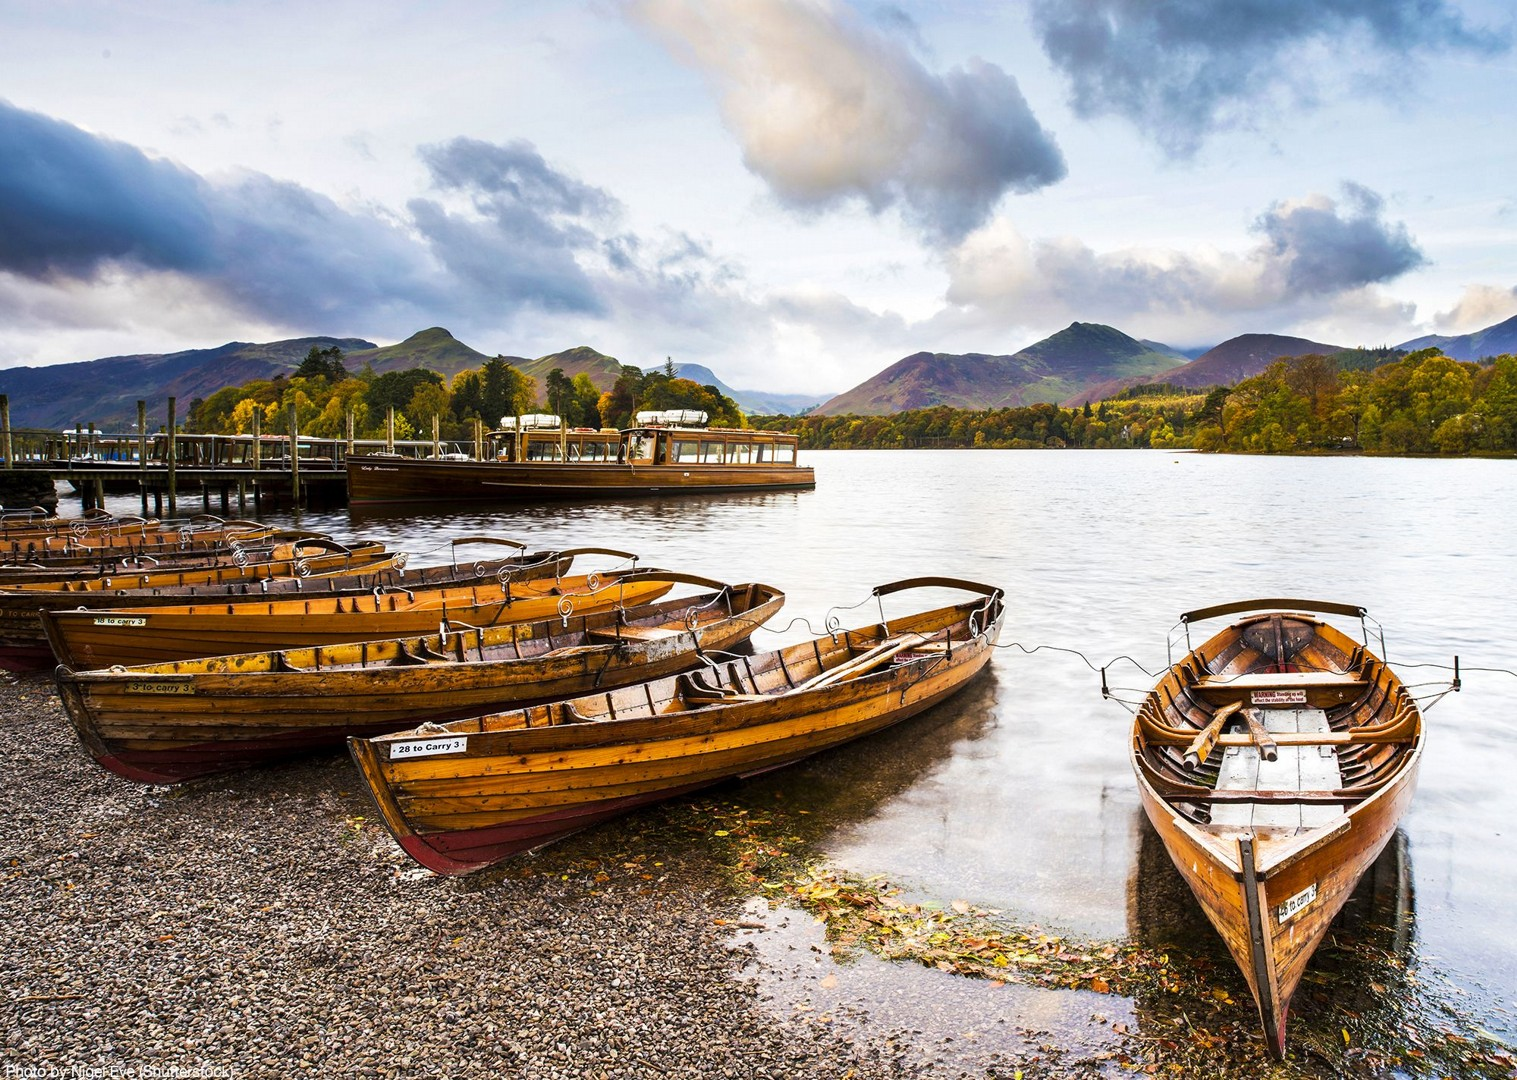 culture-local-boats-bikes-guided-leisure-tour-lake-district-derwent.jpg - UK - Lake District - Derwent Water - Self-Guided Leisure Cycling Holiday - Leisure Cycling